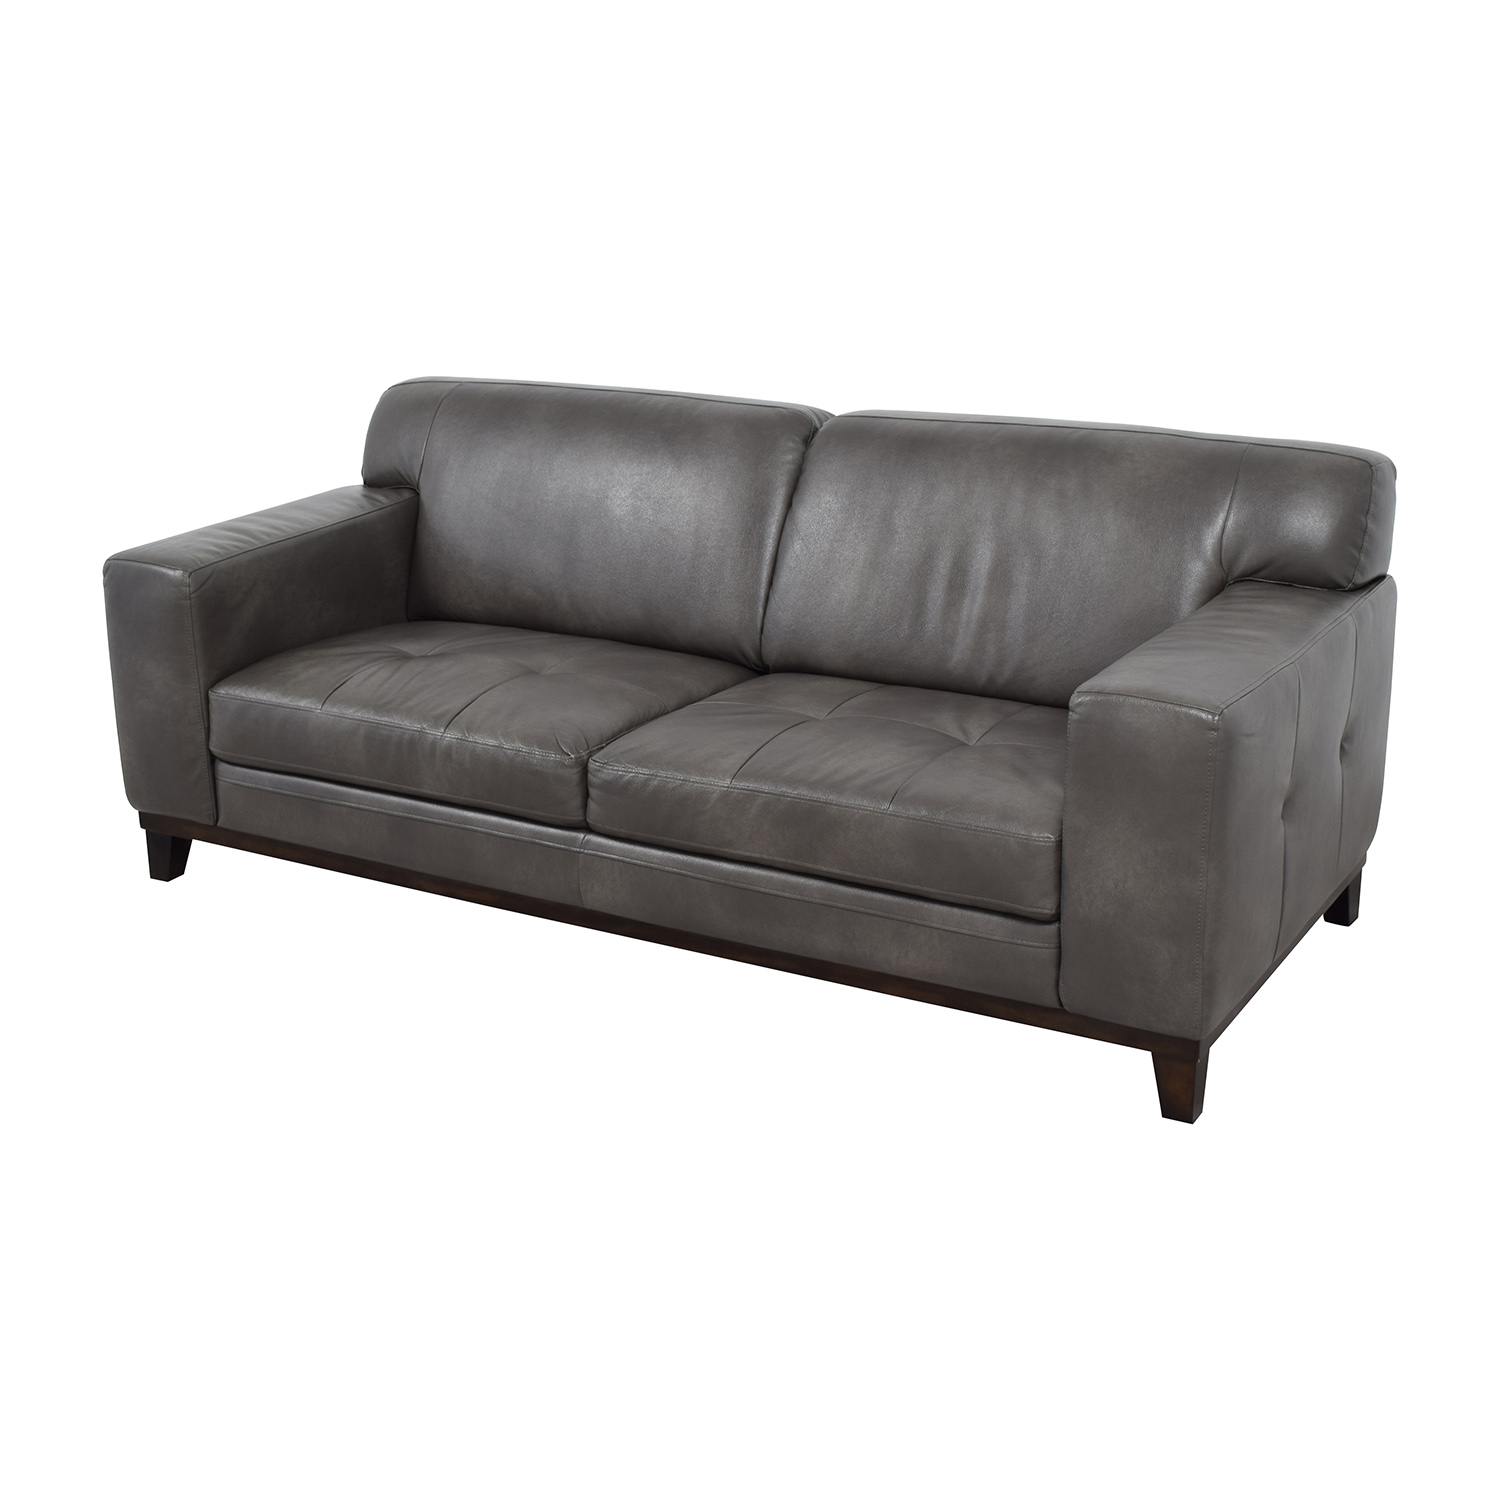 Raymour & Flanigan Raymour & Flanigan Grey Leather Couch for sale